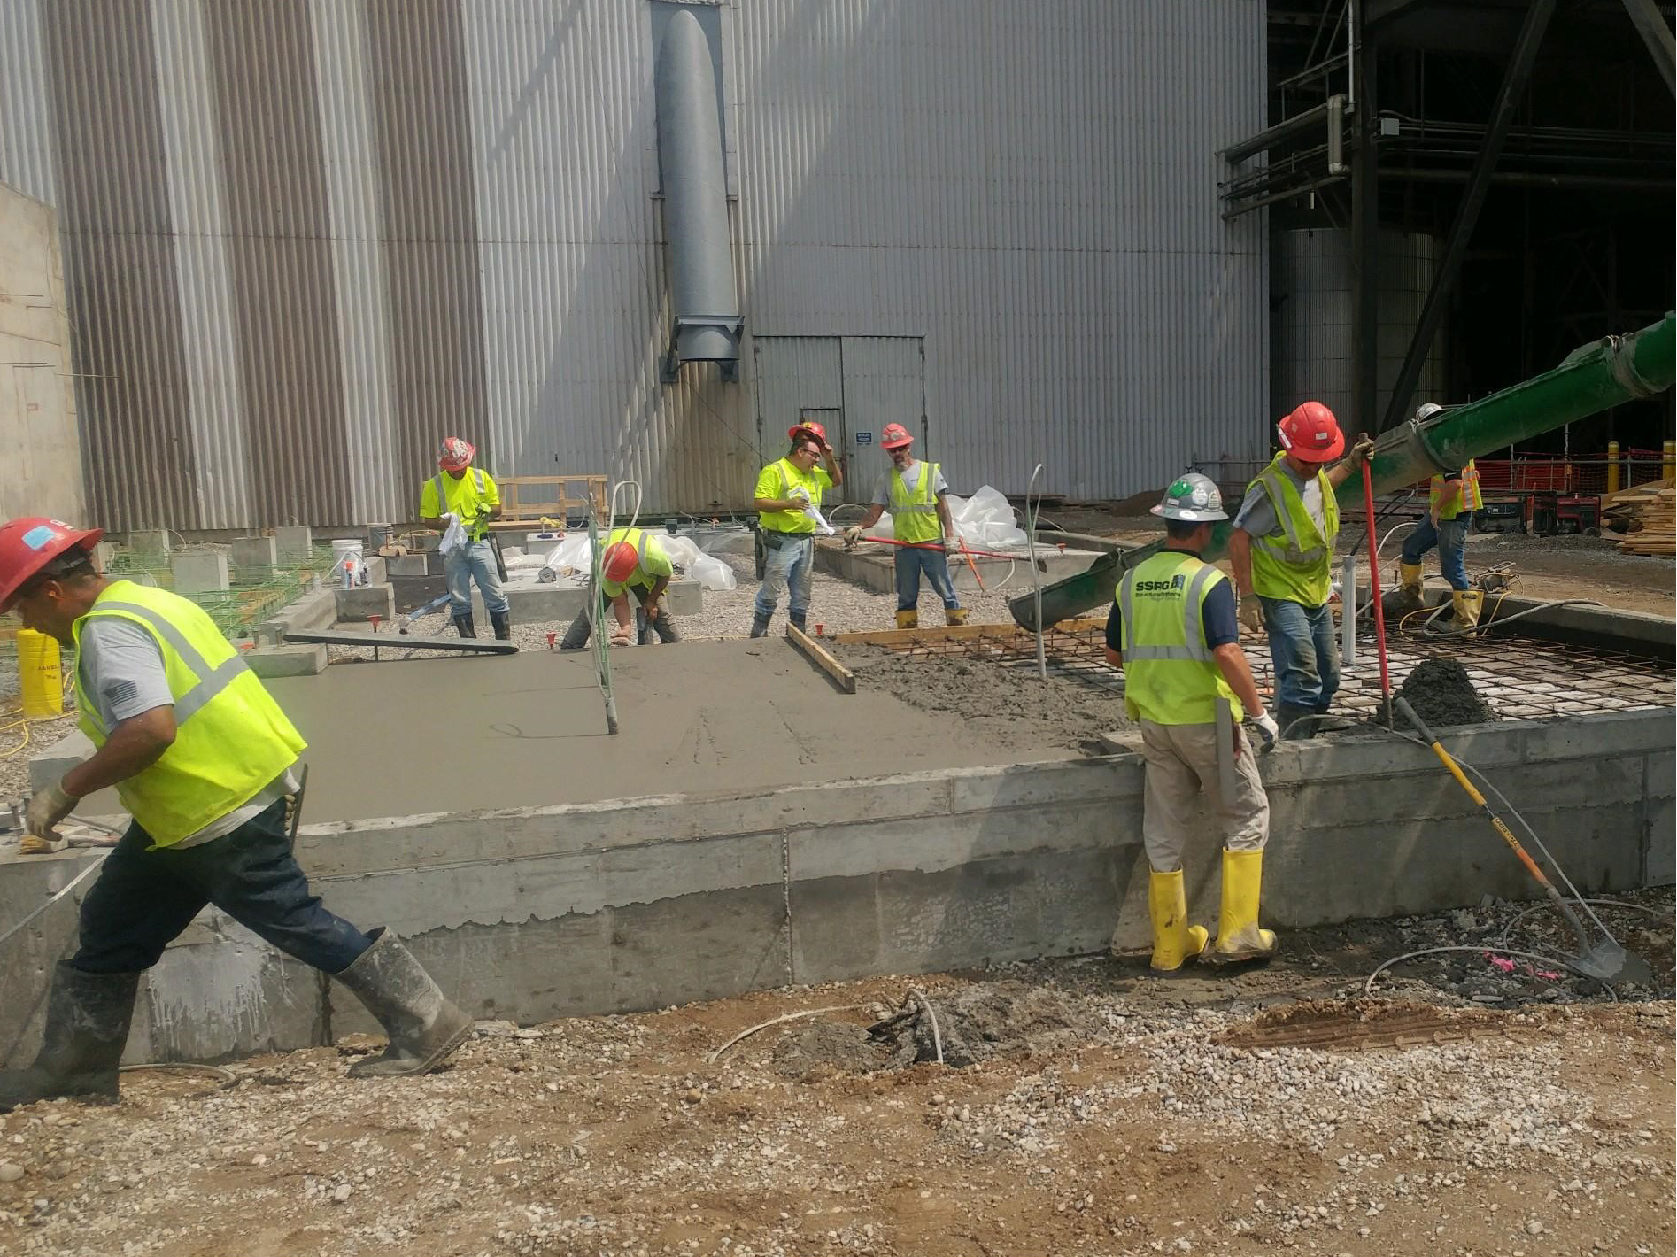 SSRG crew members at work creating concrete foundations as part of Duke energy job site, where they are preparing a foundation for dry ash waste storage.